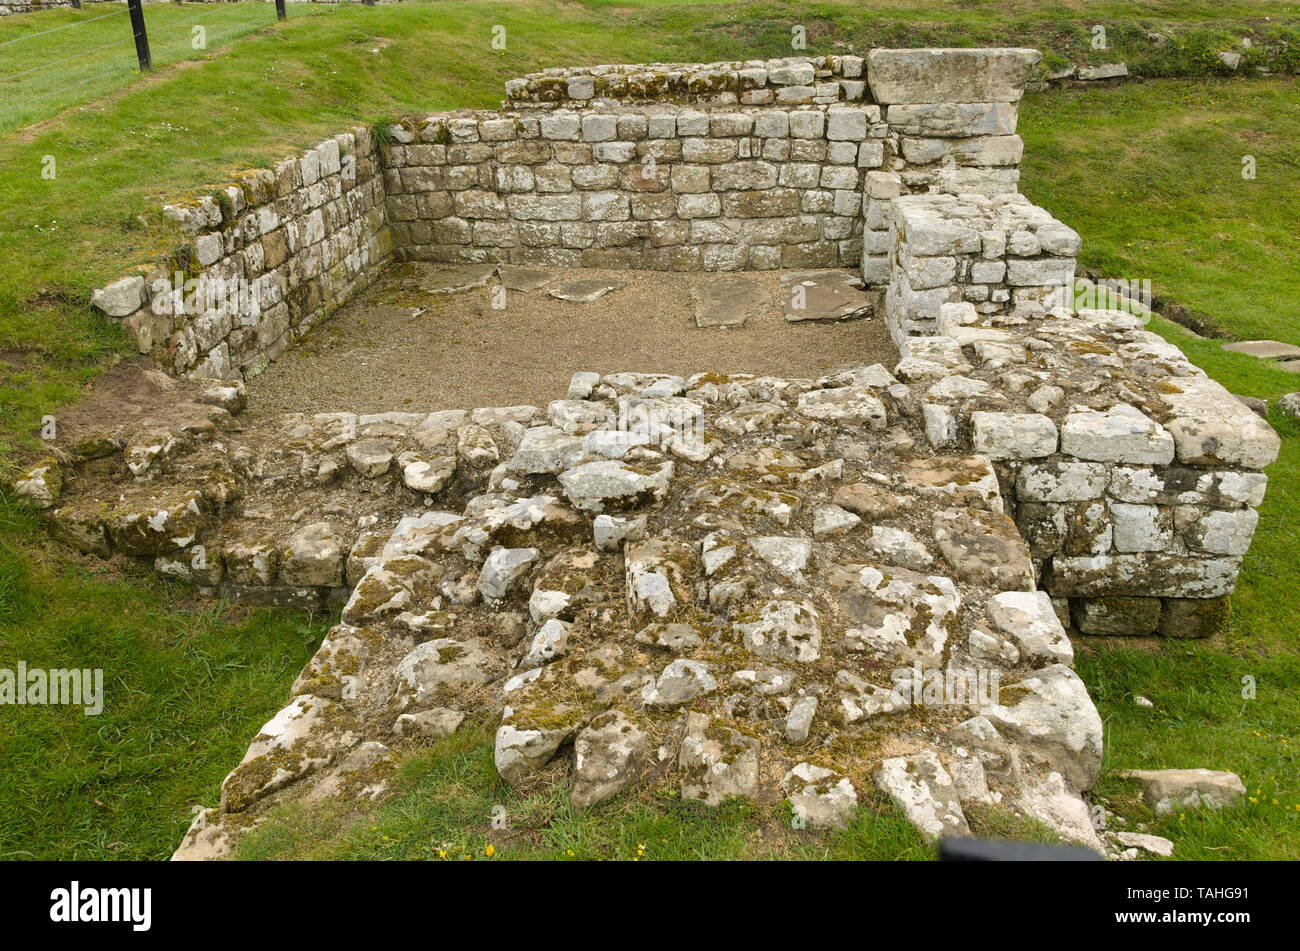 Roman ruins at Chesters fort and museum at Hexham U.K - Stock Image